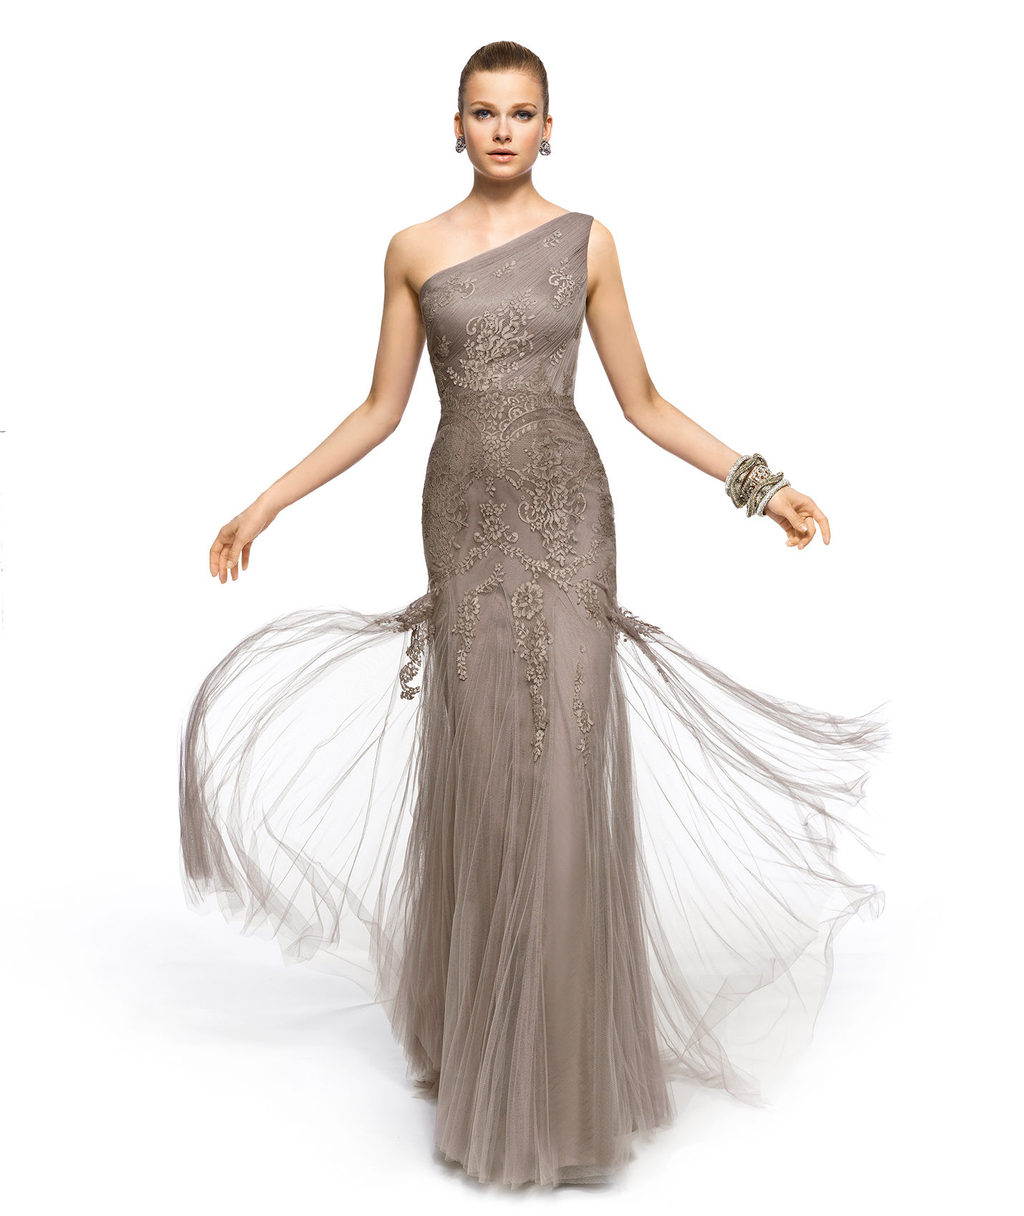 Beige-one-shoulder-gown-with-lace-applique-for-mob-or-bridesmaids.full